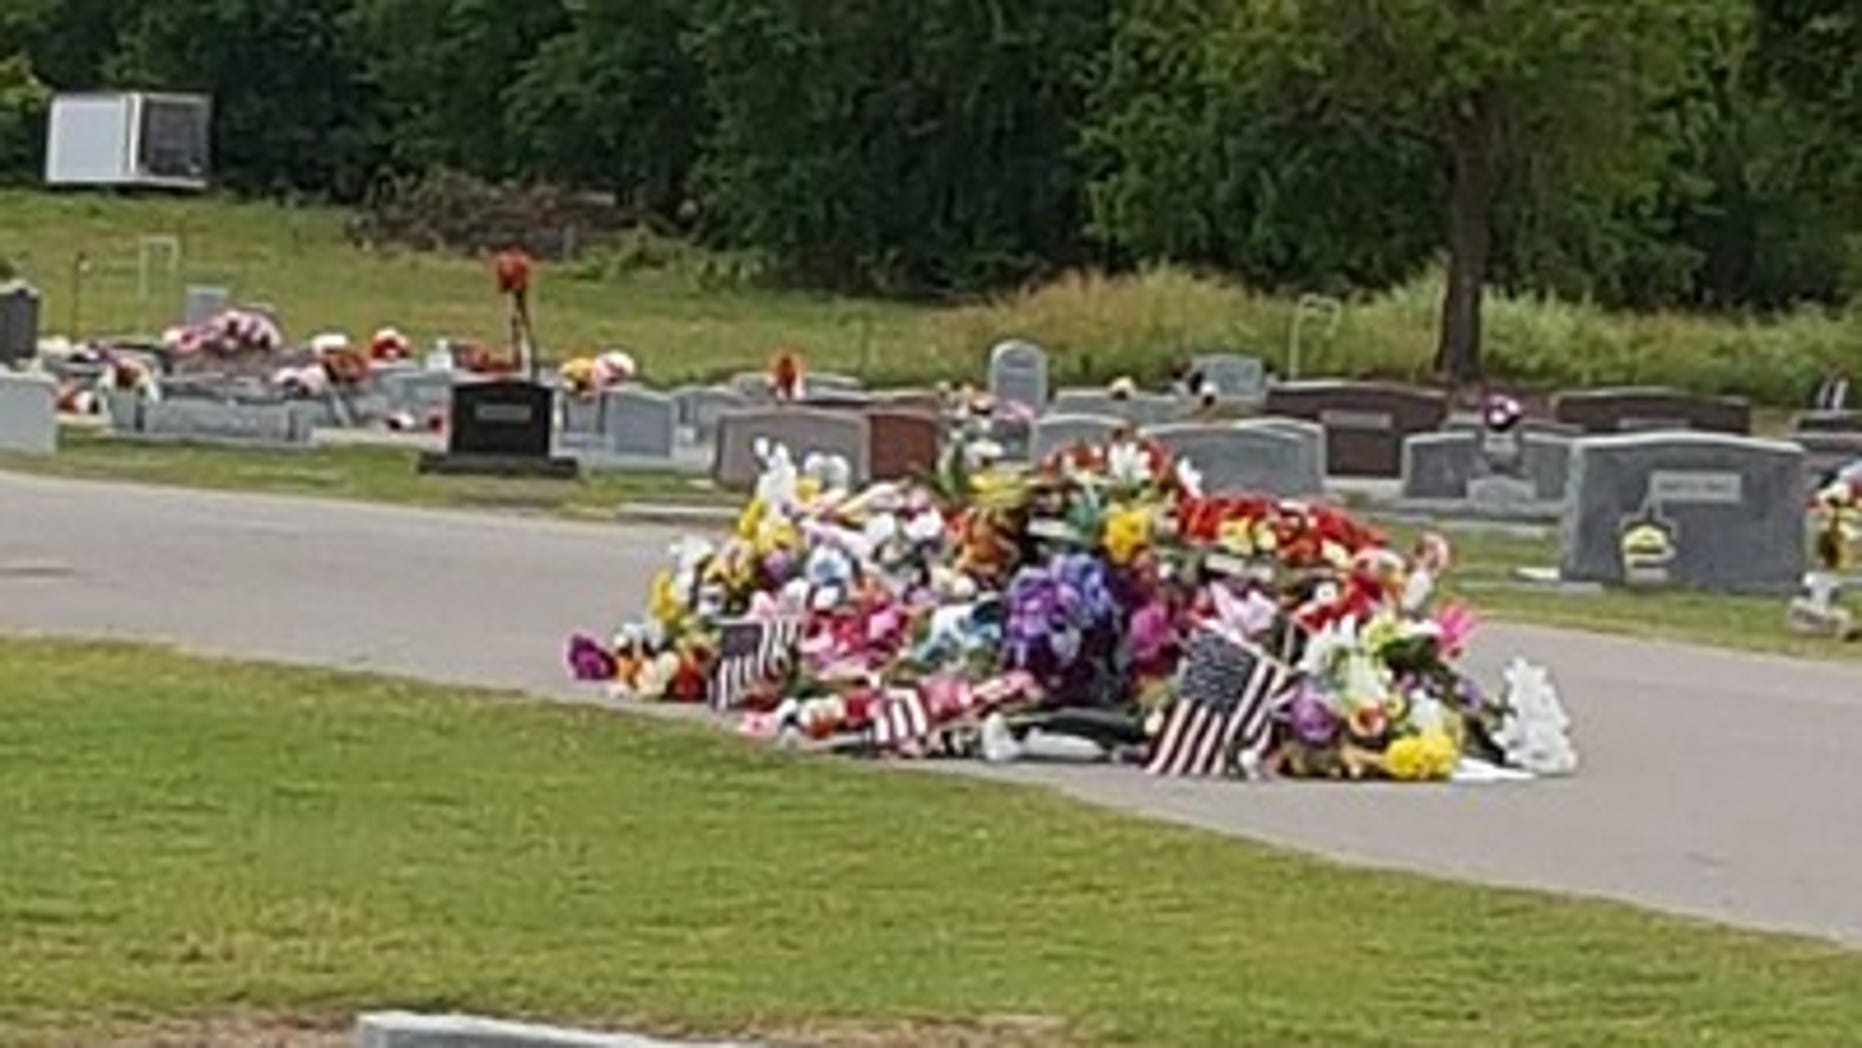 The flags were seen in a giant pile on the ground at Bixby Cemetery in Oklahoma.